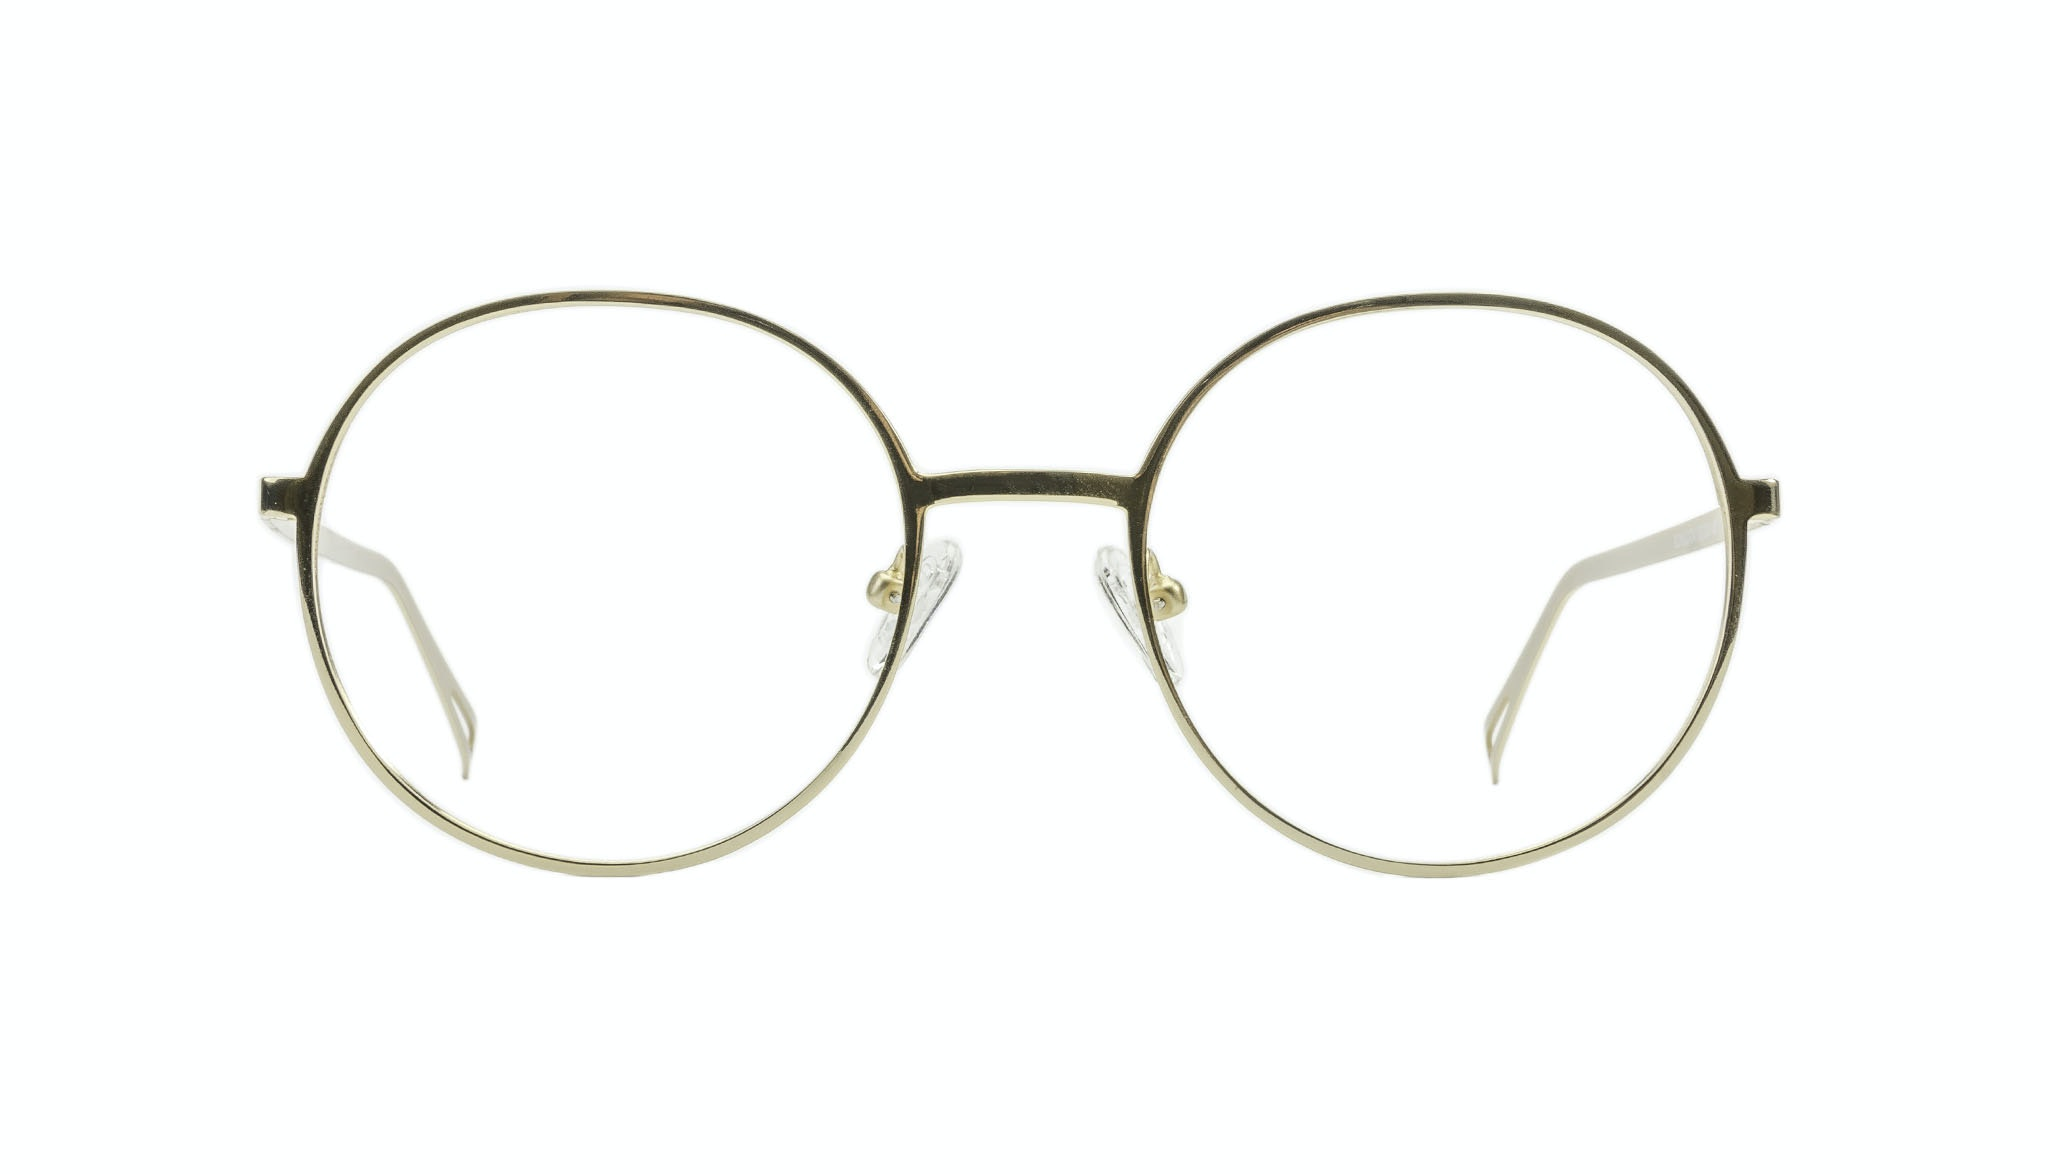 Affordable Fashion Glasses Round Eyeglasses Men Women Varna Gold